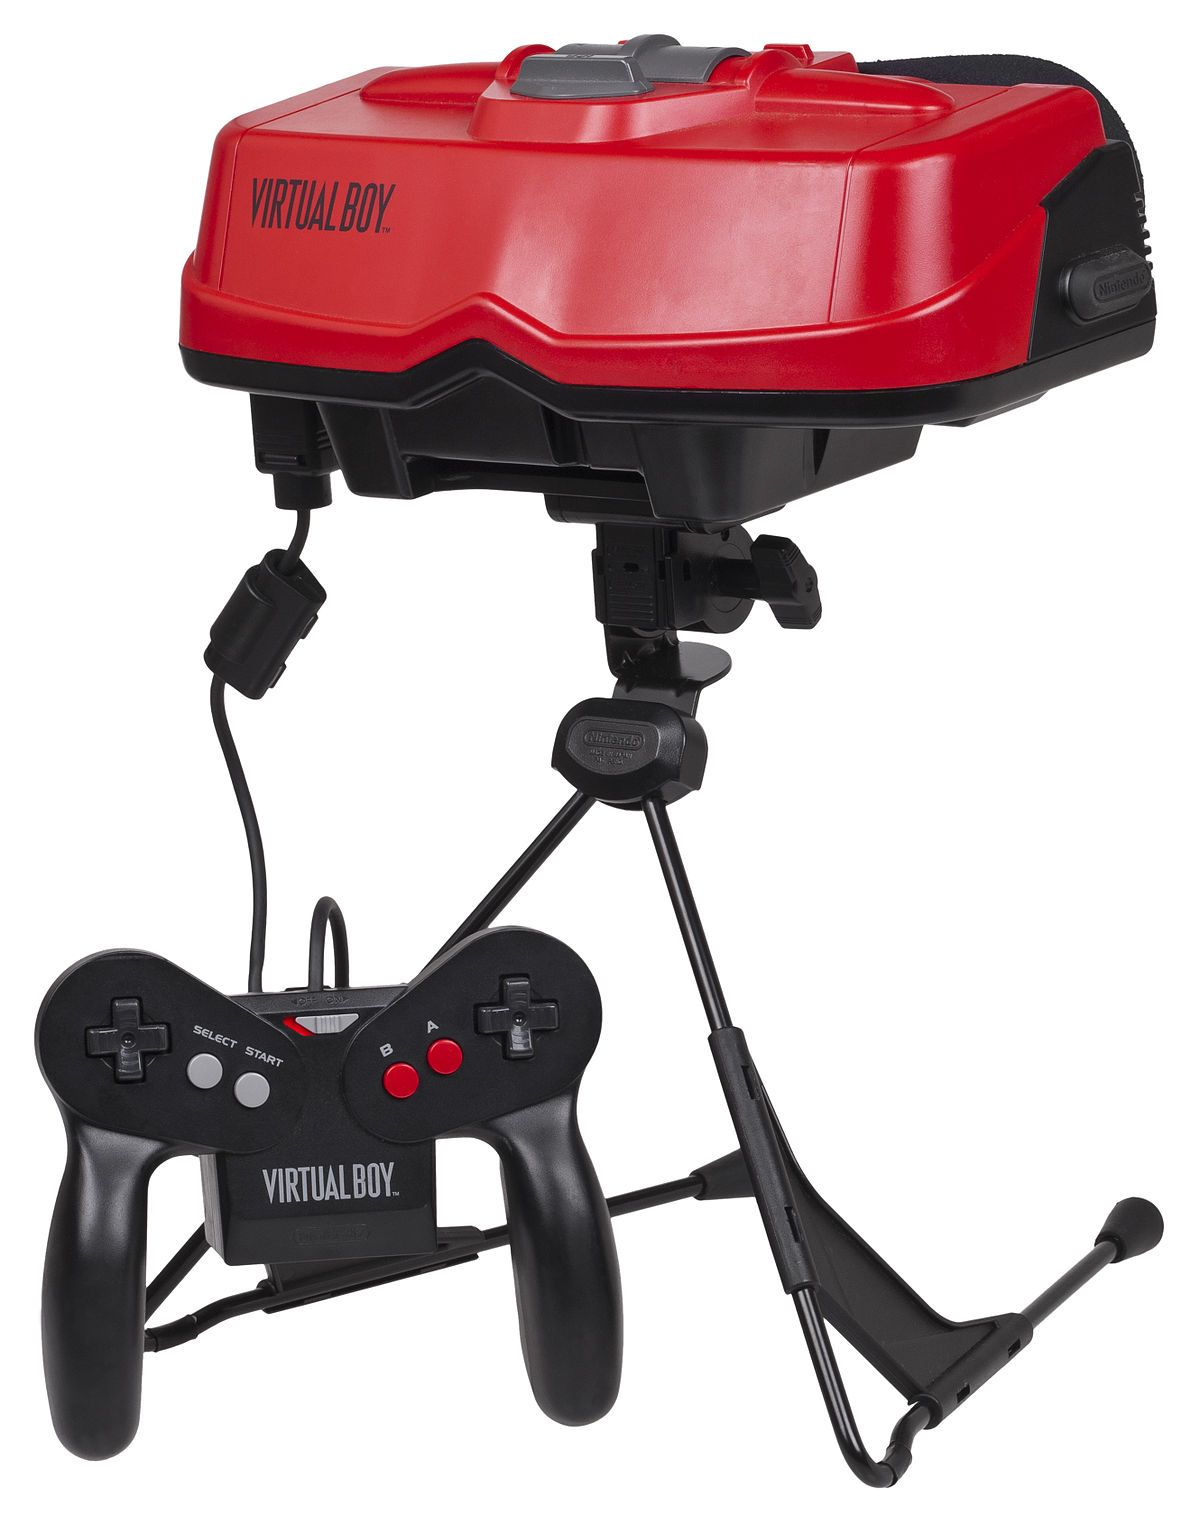 This Nintendo system is was the first virtual reality game